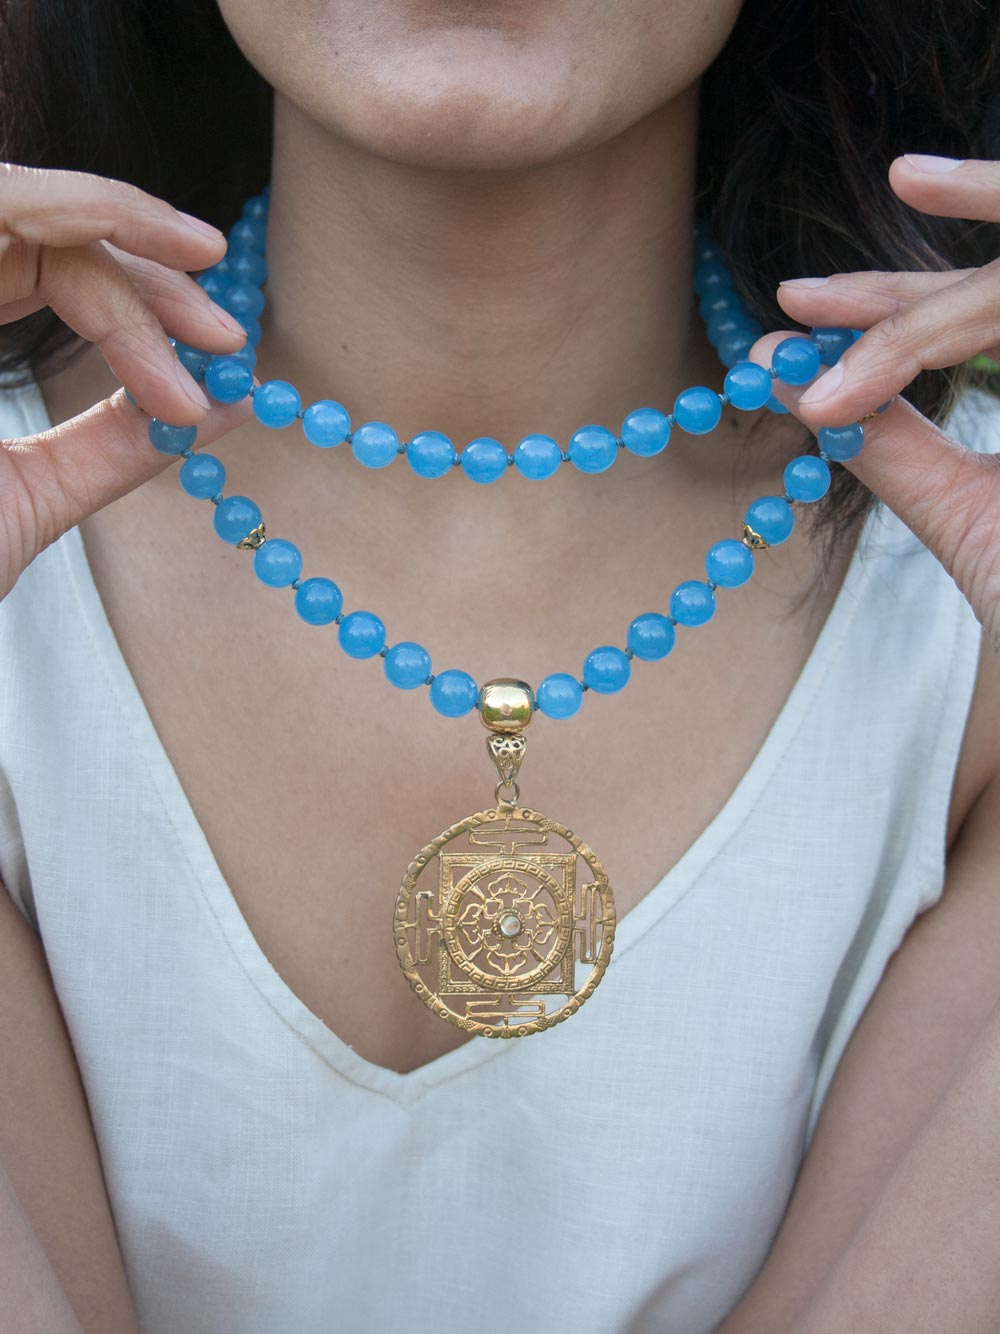 Beyond Infinity Mala, in 10mm Avalon blue aventurine, with brass Guru and Mandala. Necklace view.